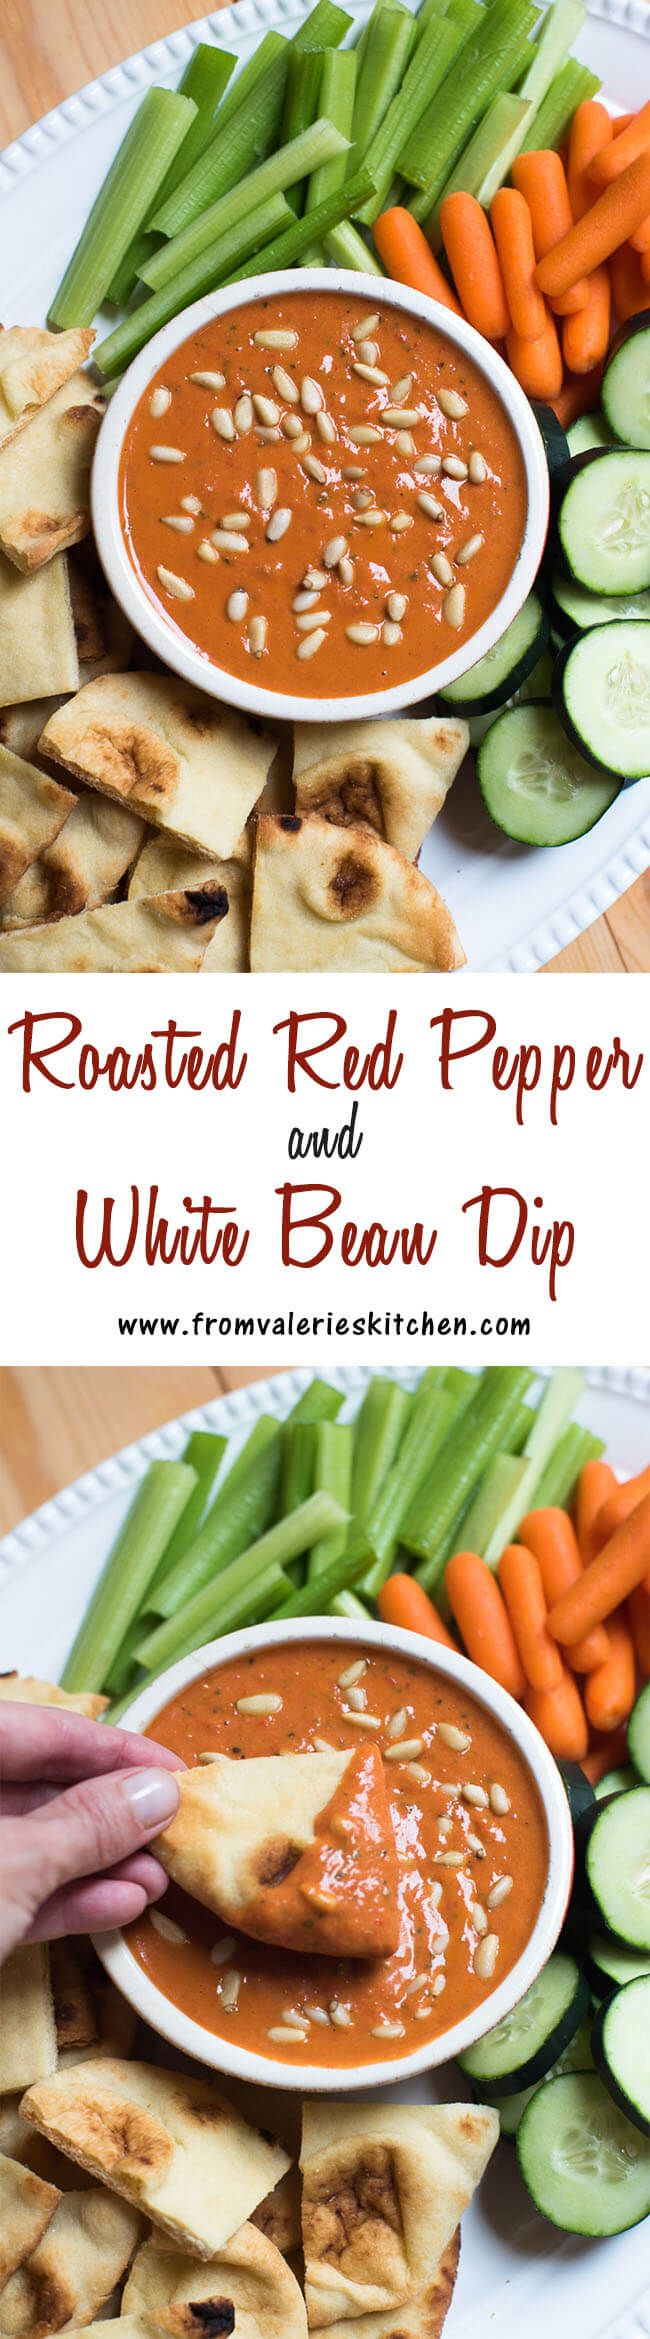 Delicious served with warm toasted naan. A flavor-packed, wholesome snack alternative! ~ #MeatlessMondayNight #sp http://www.fromvalerieskitchen.com